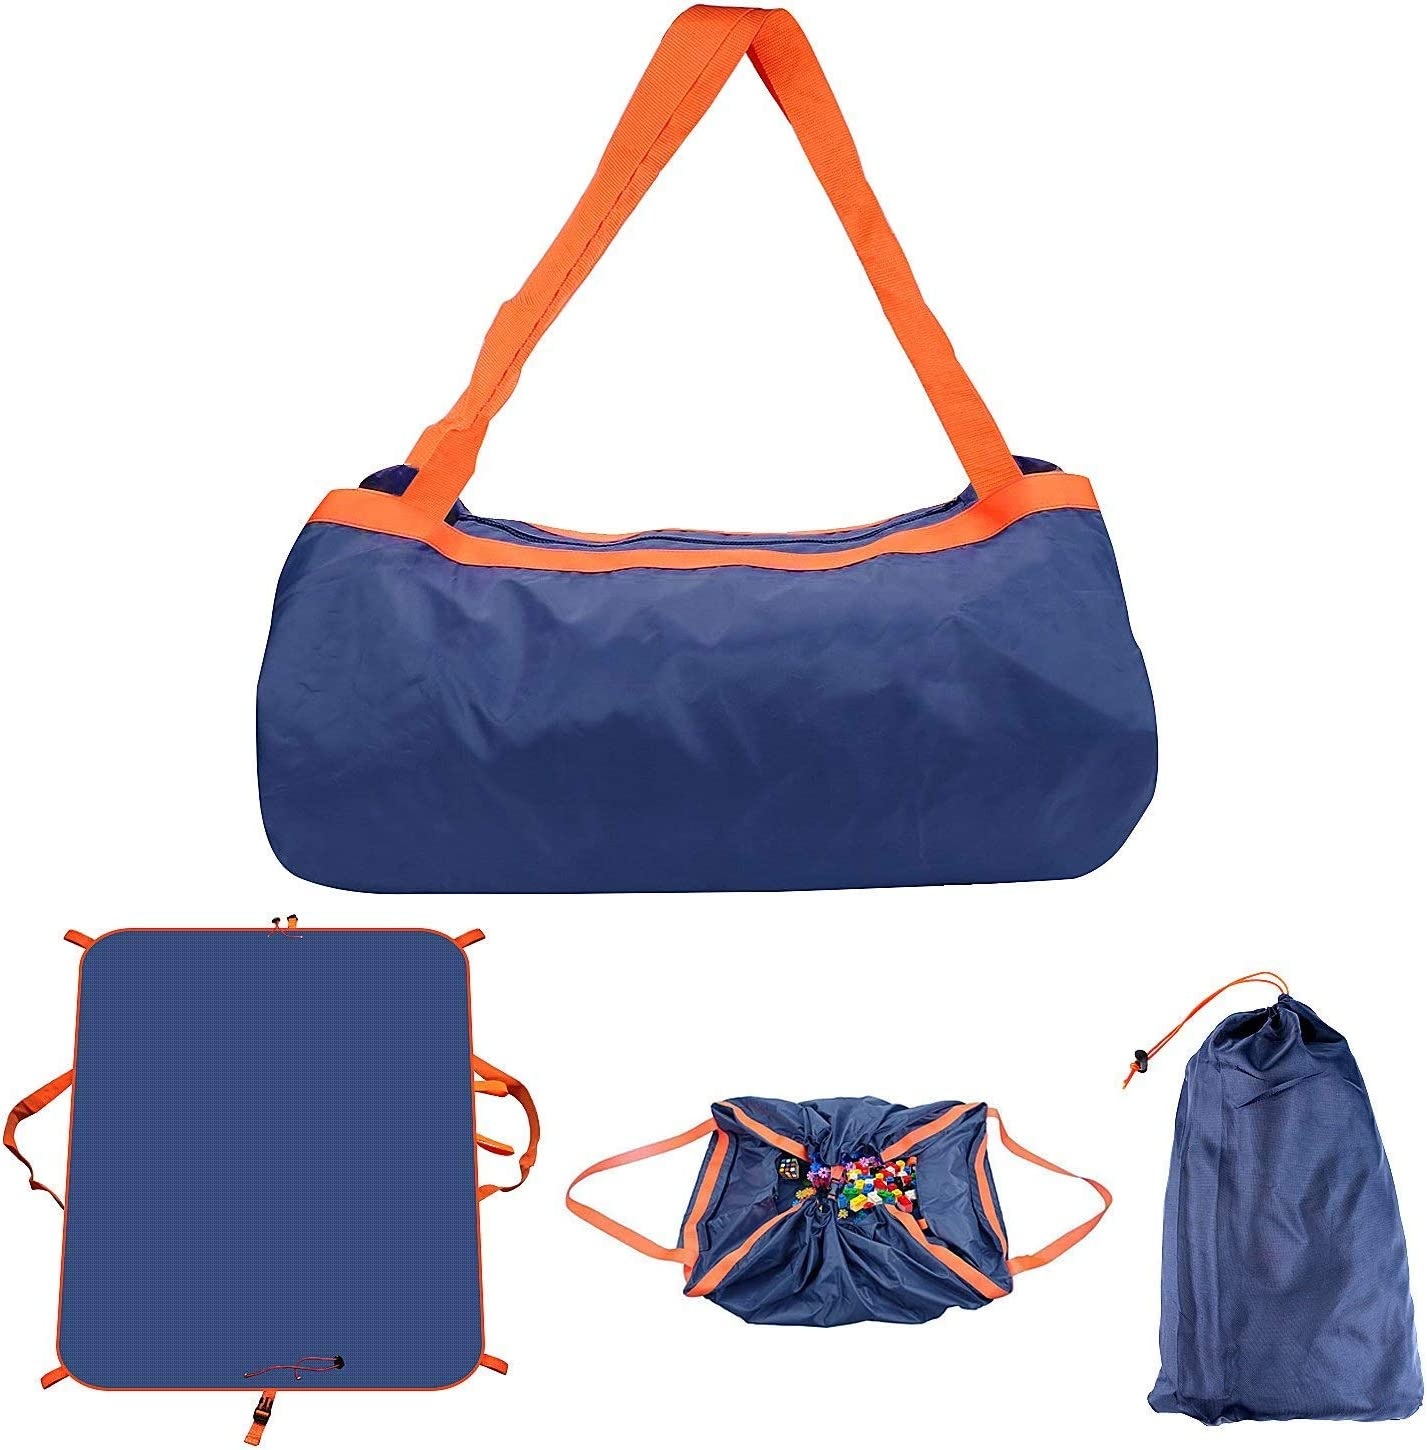 Sysmarts Picnic Blanket Outdoor Waterproof Mat Foldable Portable Large Bag for Outdoor Travel Beach Dark Blue Camping 57 x 57